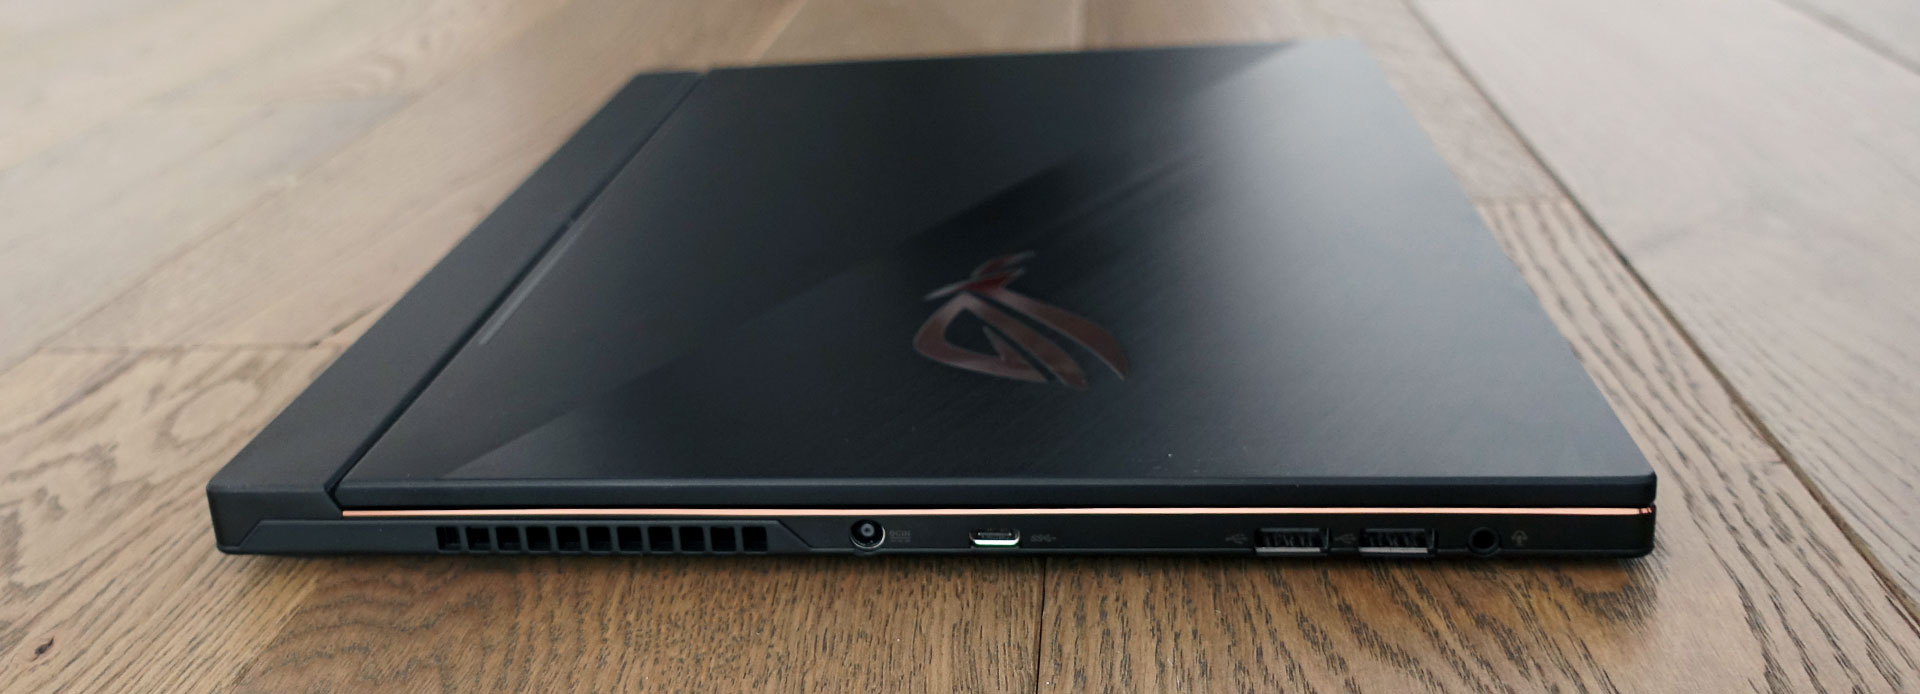 Asus ROG Zephyrus S GX531GX review and benchmarks (i7-8750H, RTX